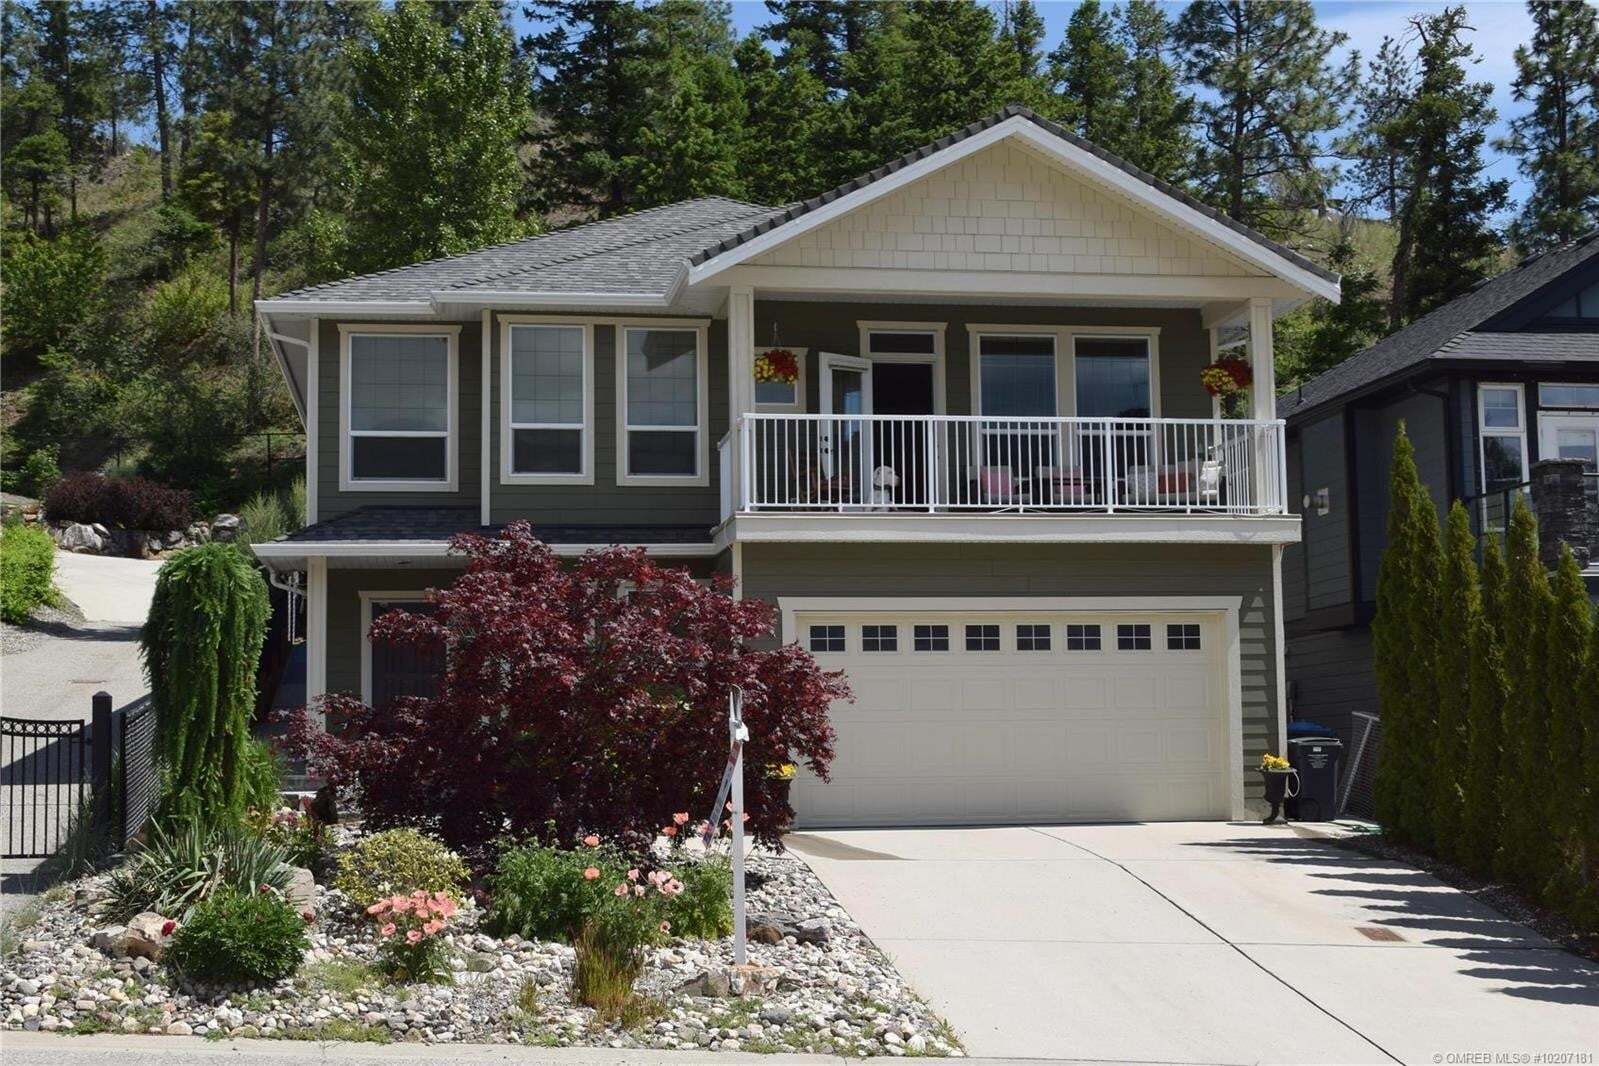 House for sale at 2198 Sunview Dr Kelowna British Columbia - MLS: 10207181